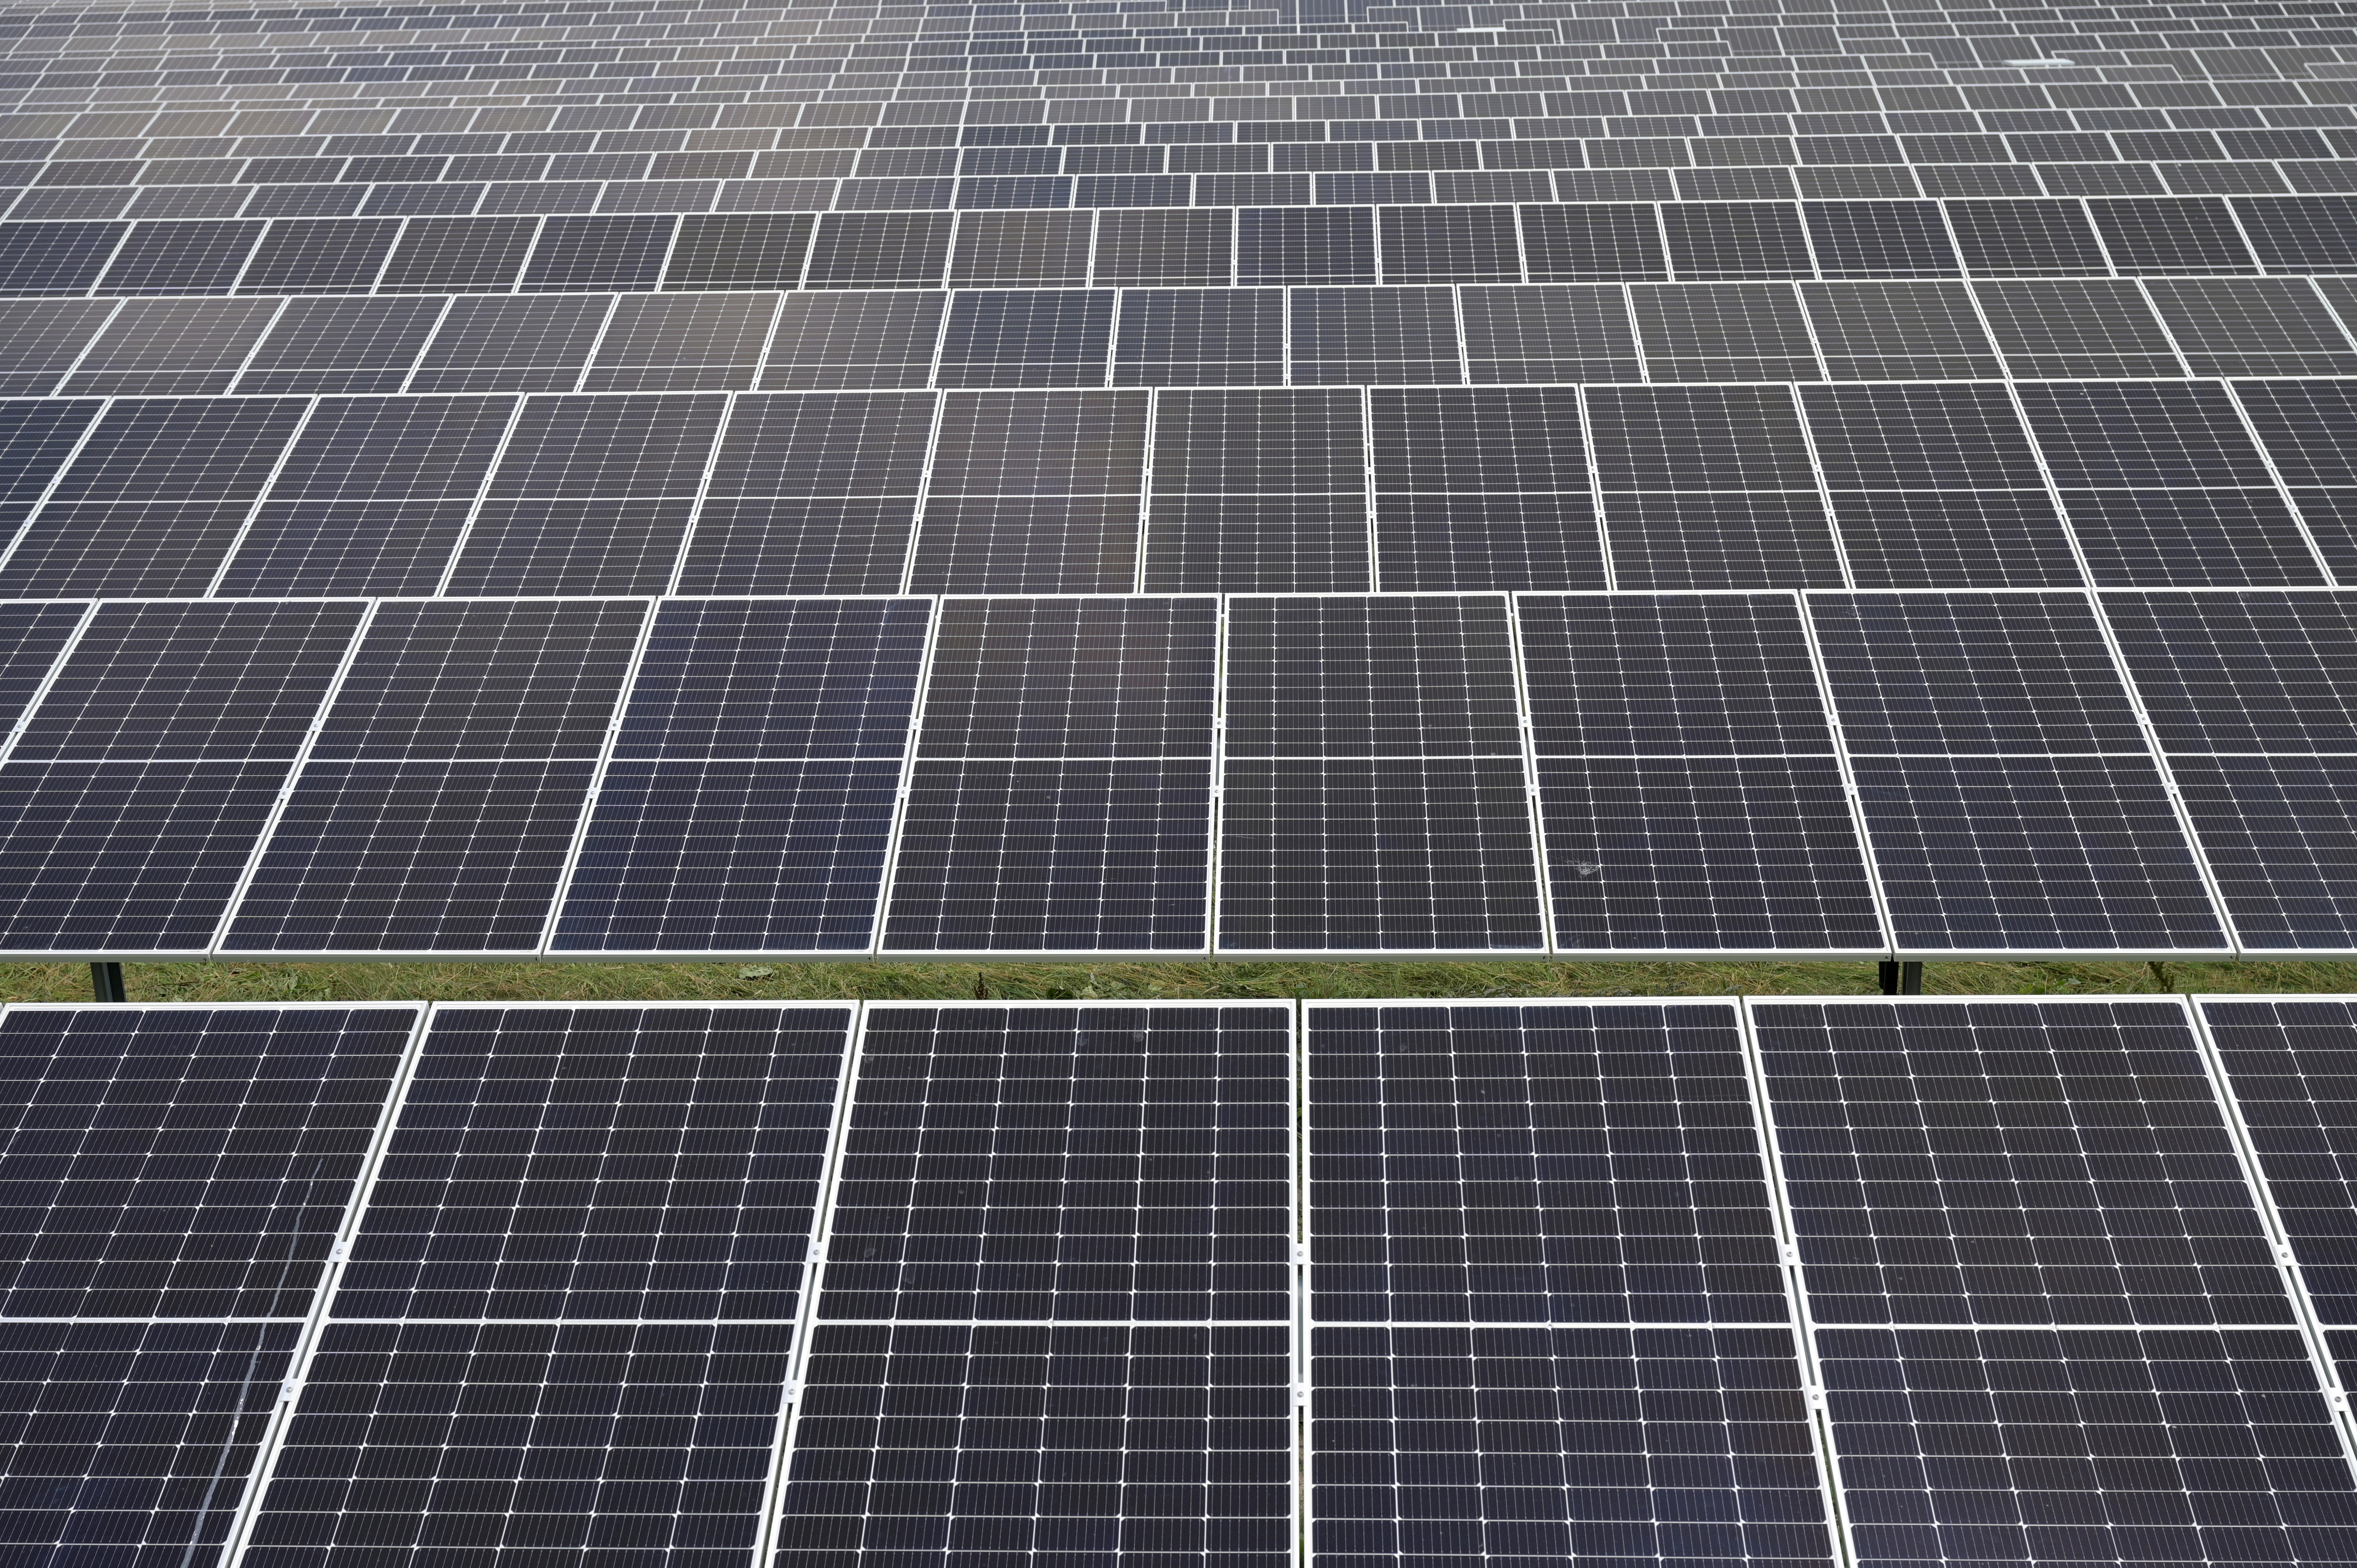 Solar panels are pictured in a solar park in Lottorf, Germany July 30, 2021. REUTERS/Fabian Bimmer/File Photo